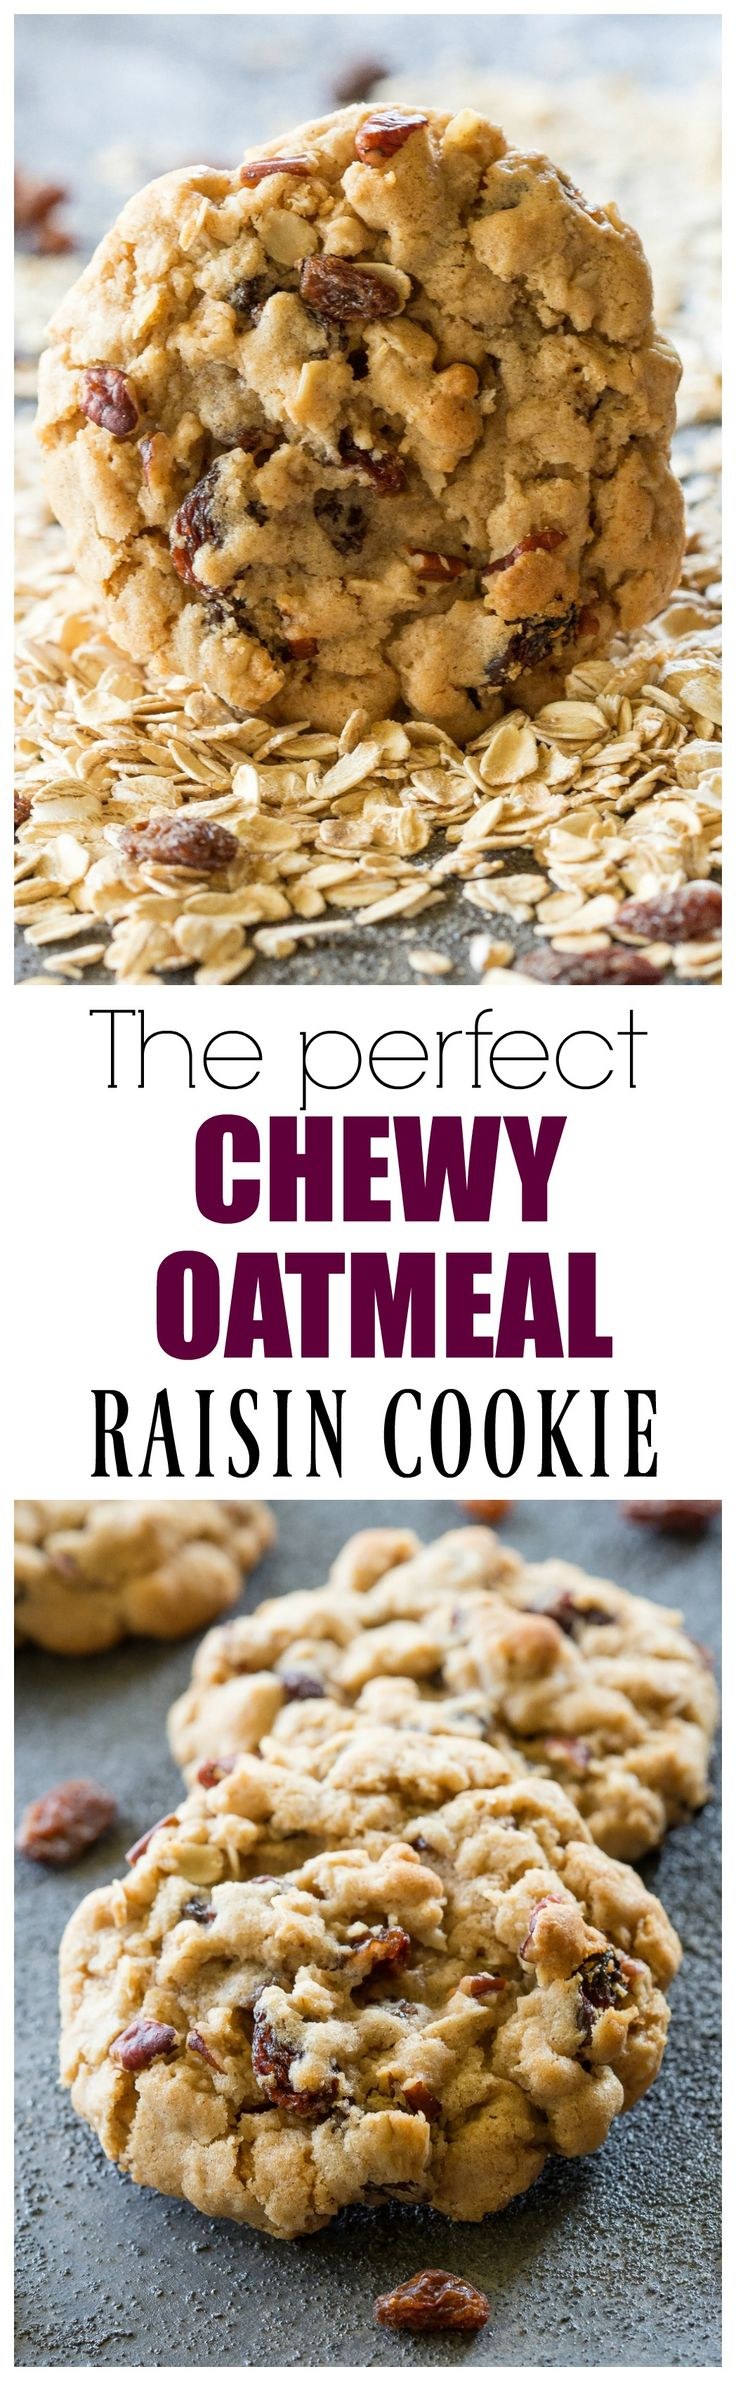 The Best Chewy Oatmeal Raisin Cookies - perfect texture, full of oats, raisins, and nuts. http://the-girl-who-ate-everything.com